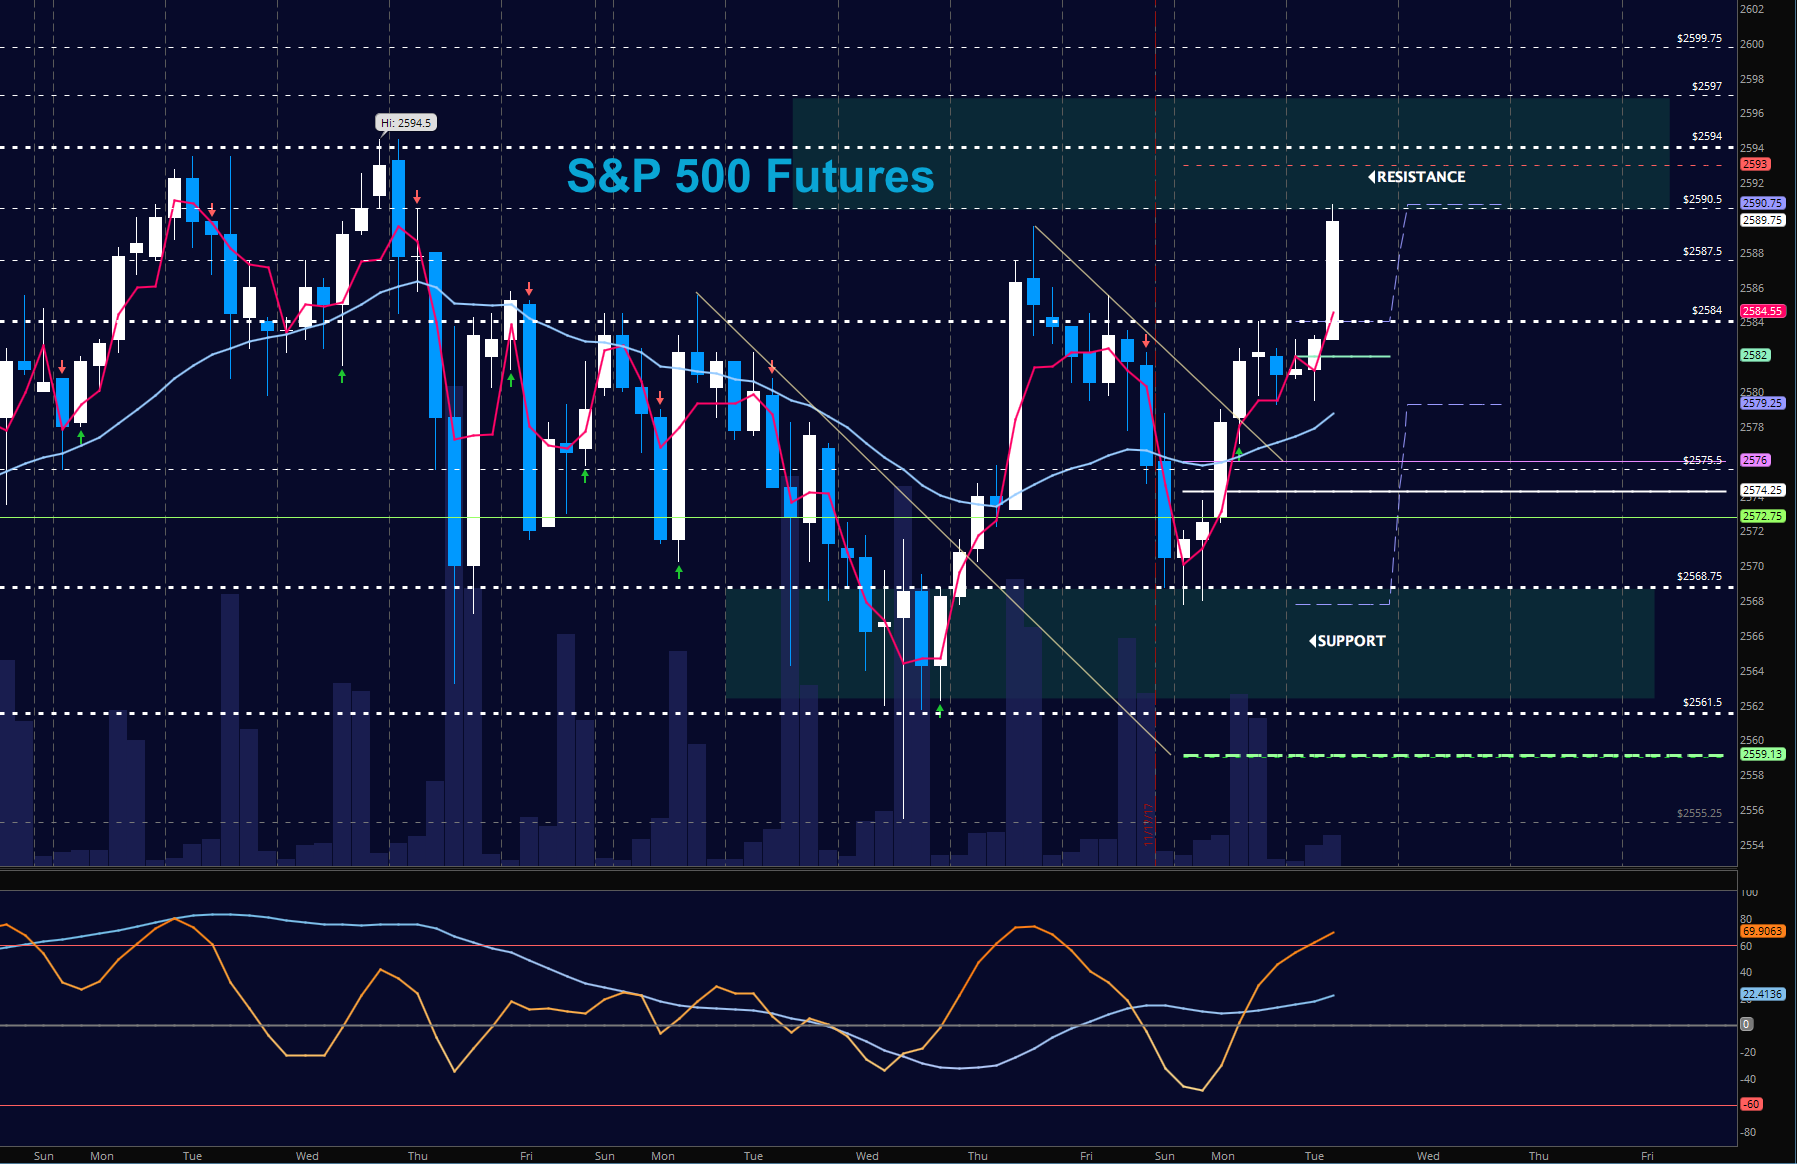 sp 500 futures es trading chart november 21_news_update_markets